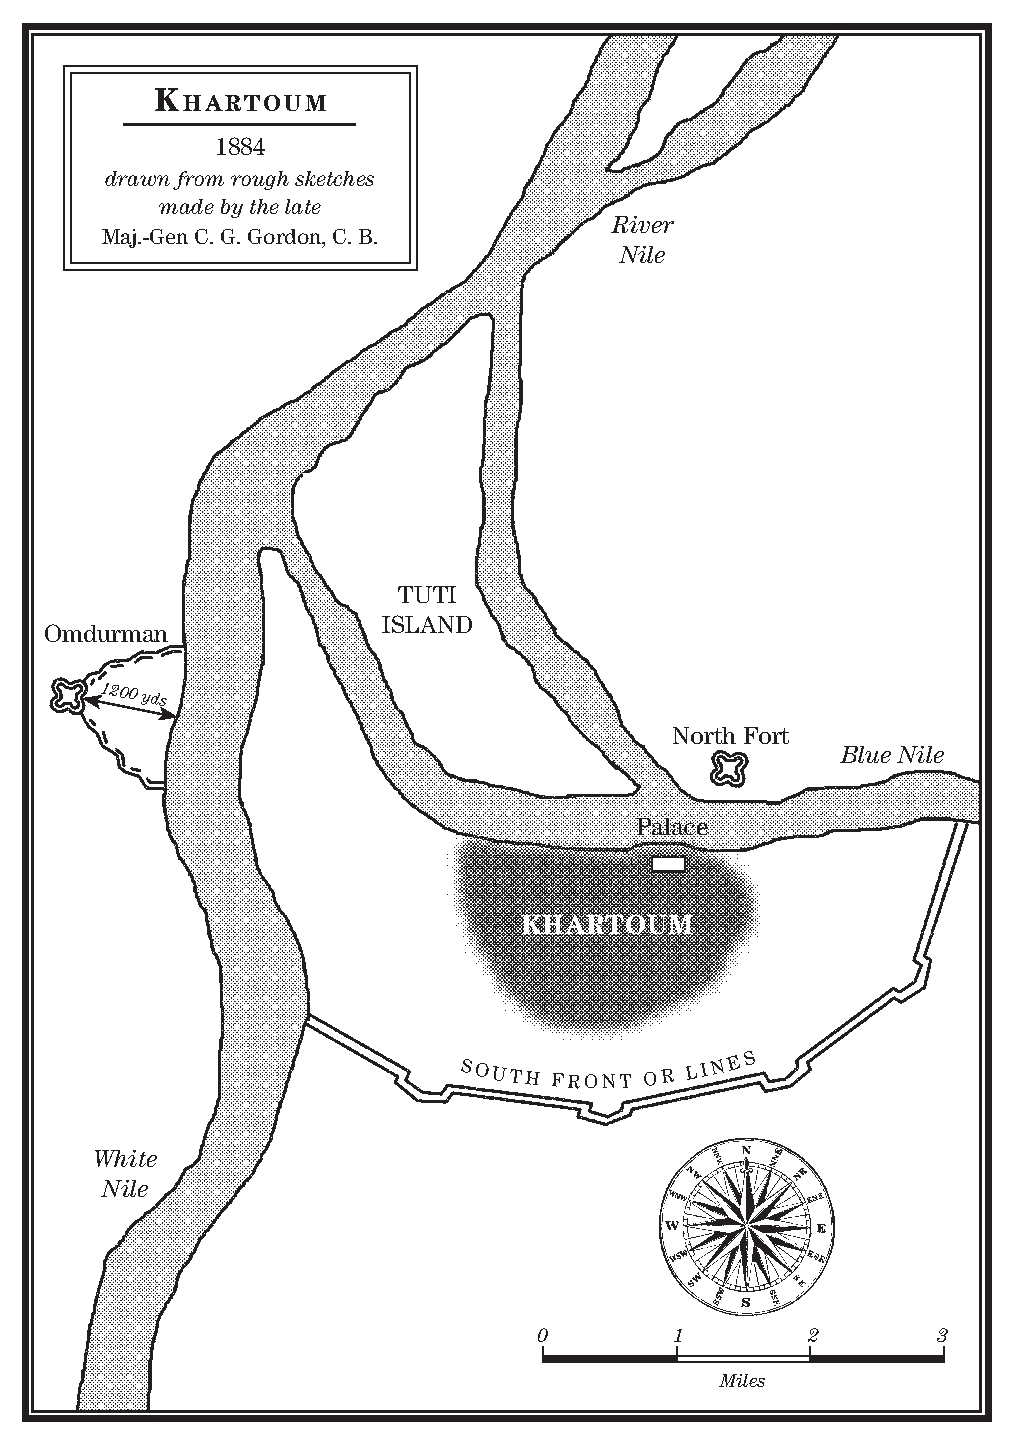 Key settings in my novel are the Governor's Palace on the south side of the BlueNile and the North Fort on the opposite bank, to the east of Tuti Island. To the south you can see the defensive walls that Gordon attempted to strengthen, and on the west bank the fort of Omdurman where the main Mahdist force was encamped and where Kitchener fourteen years later exacted his terrible revenge for the murder of Gordon.